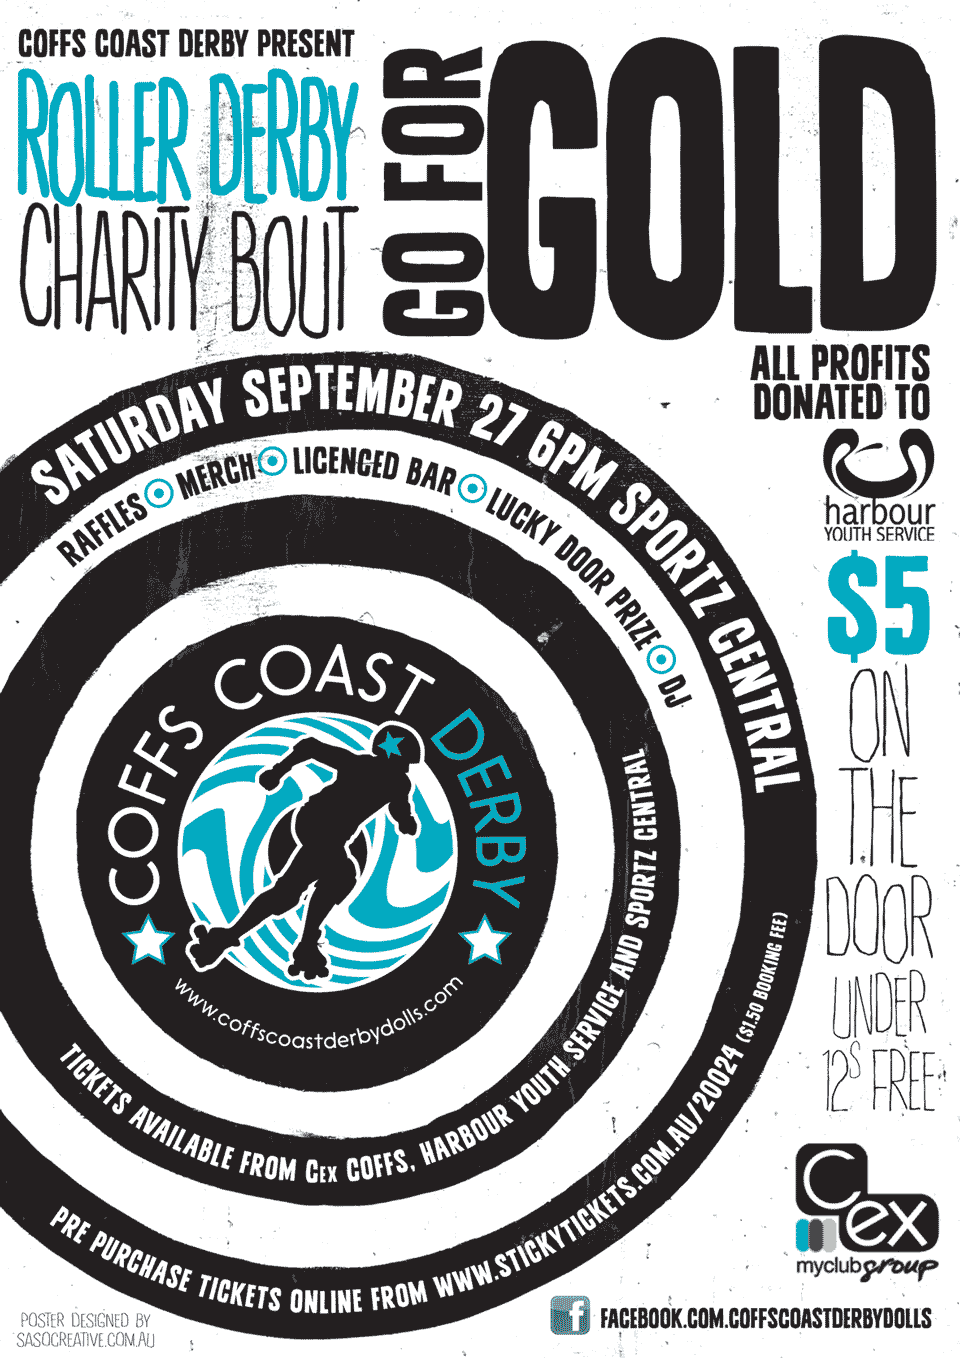 Coffs Coast Derby bout poster, Go For Gold, by saso.creative